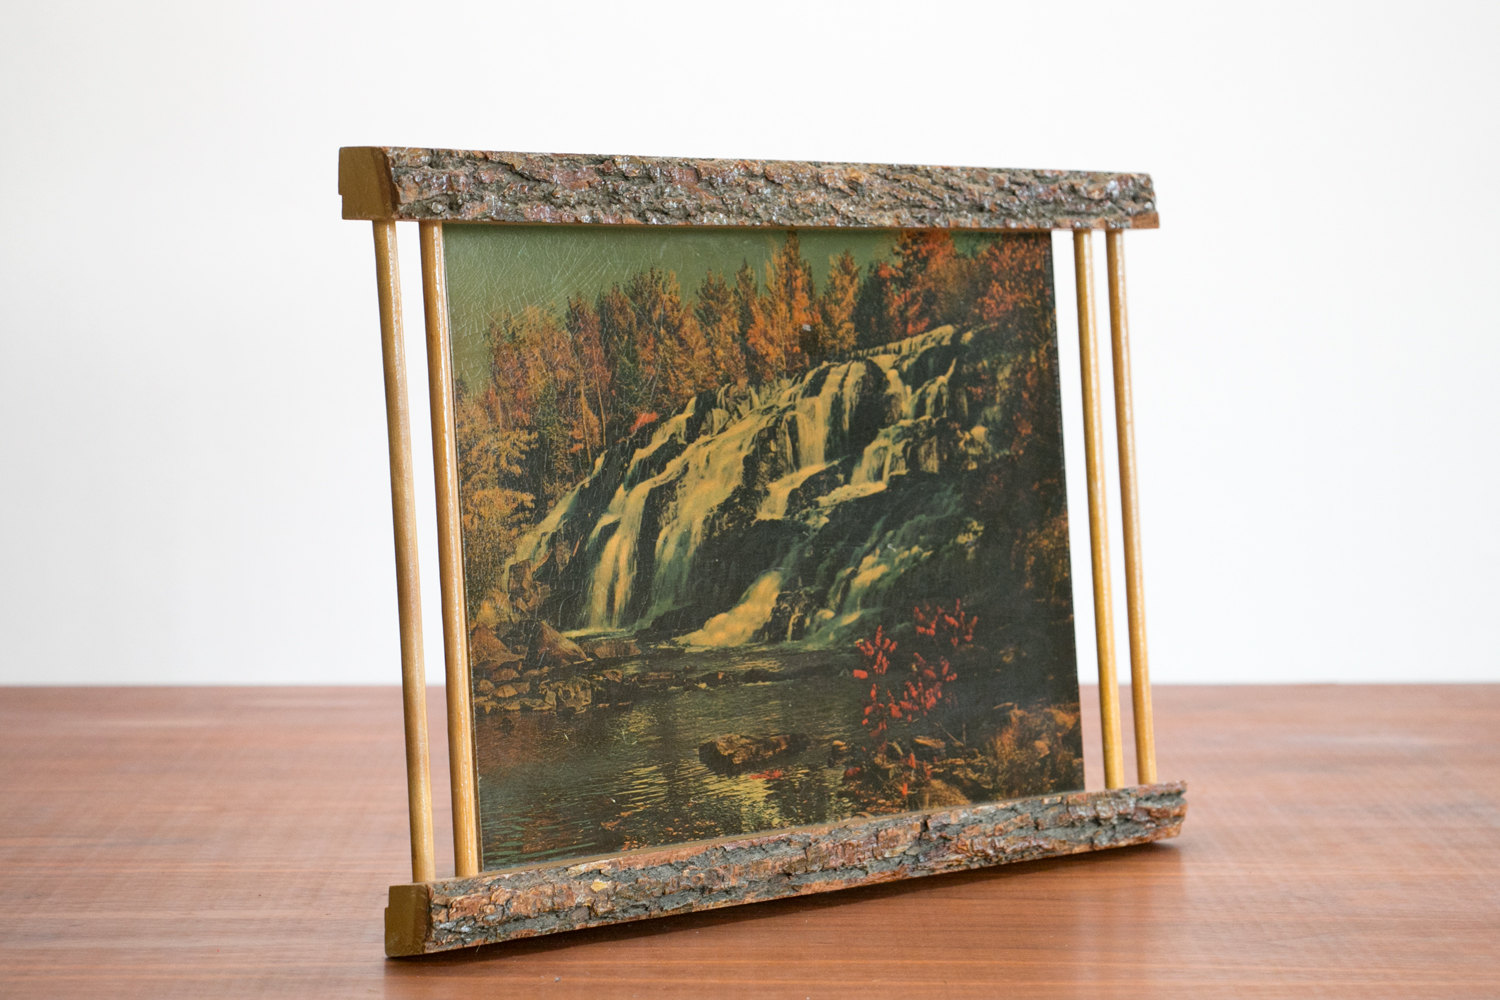 Vintage 1950's Mid Century Waterfall Photographic Print with Wood Bark Frame // Rustic, Modern, Hipster, Art, Americana, National Parks